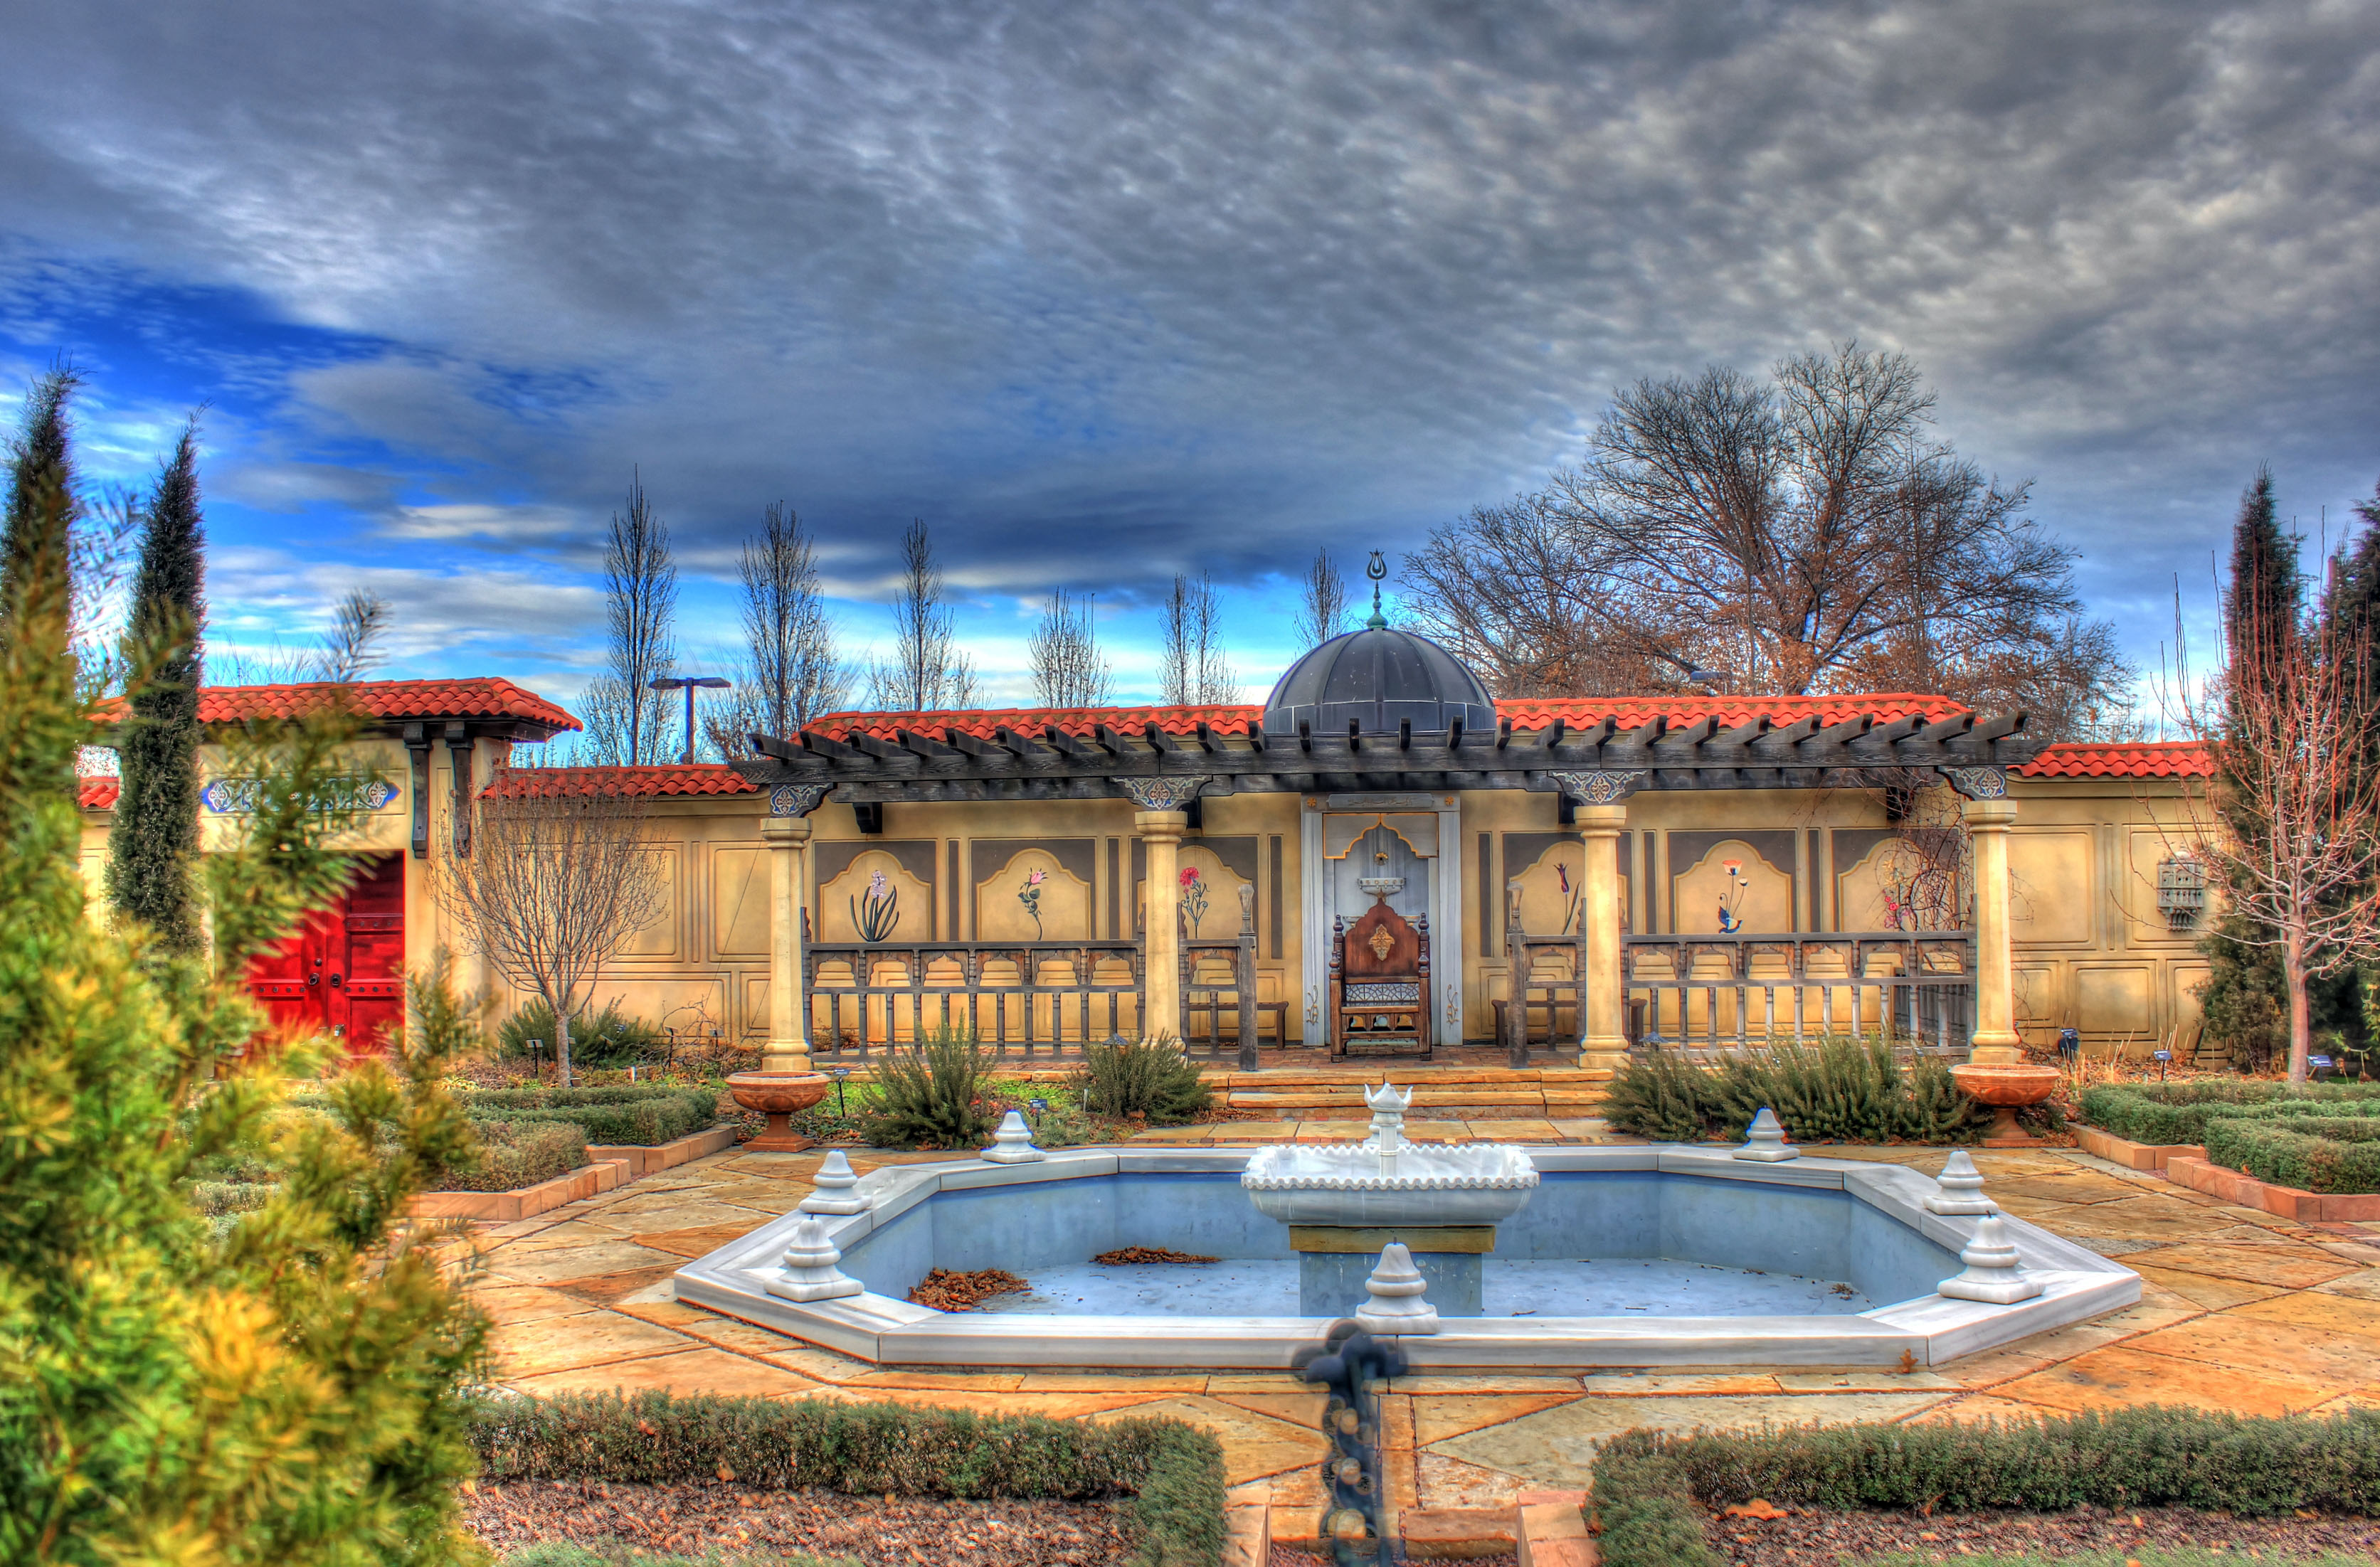 Free Stock of Throne room in Gardens in St Louis Missouri